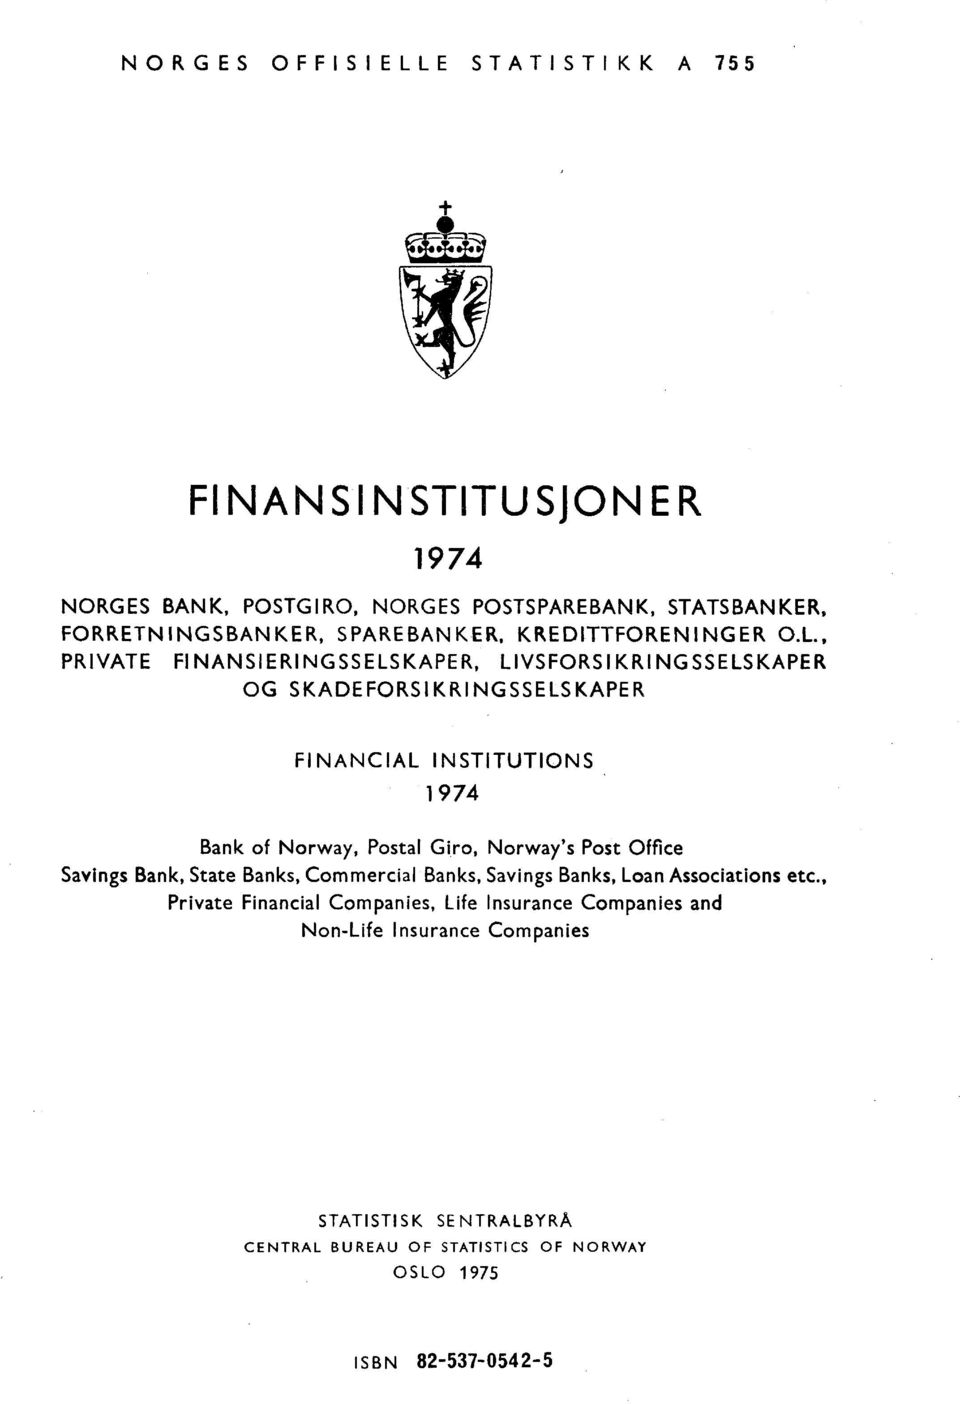 , PRIVATE FINANSIERINGSSELSKAPER, LIVSFORSIKRINGSSELSKAPER OG SKADEFORSIKRINGSSELSKAPER FINANCIAL INSTITUTIONS 1974 Bank of Norway, Postal Giro,